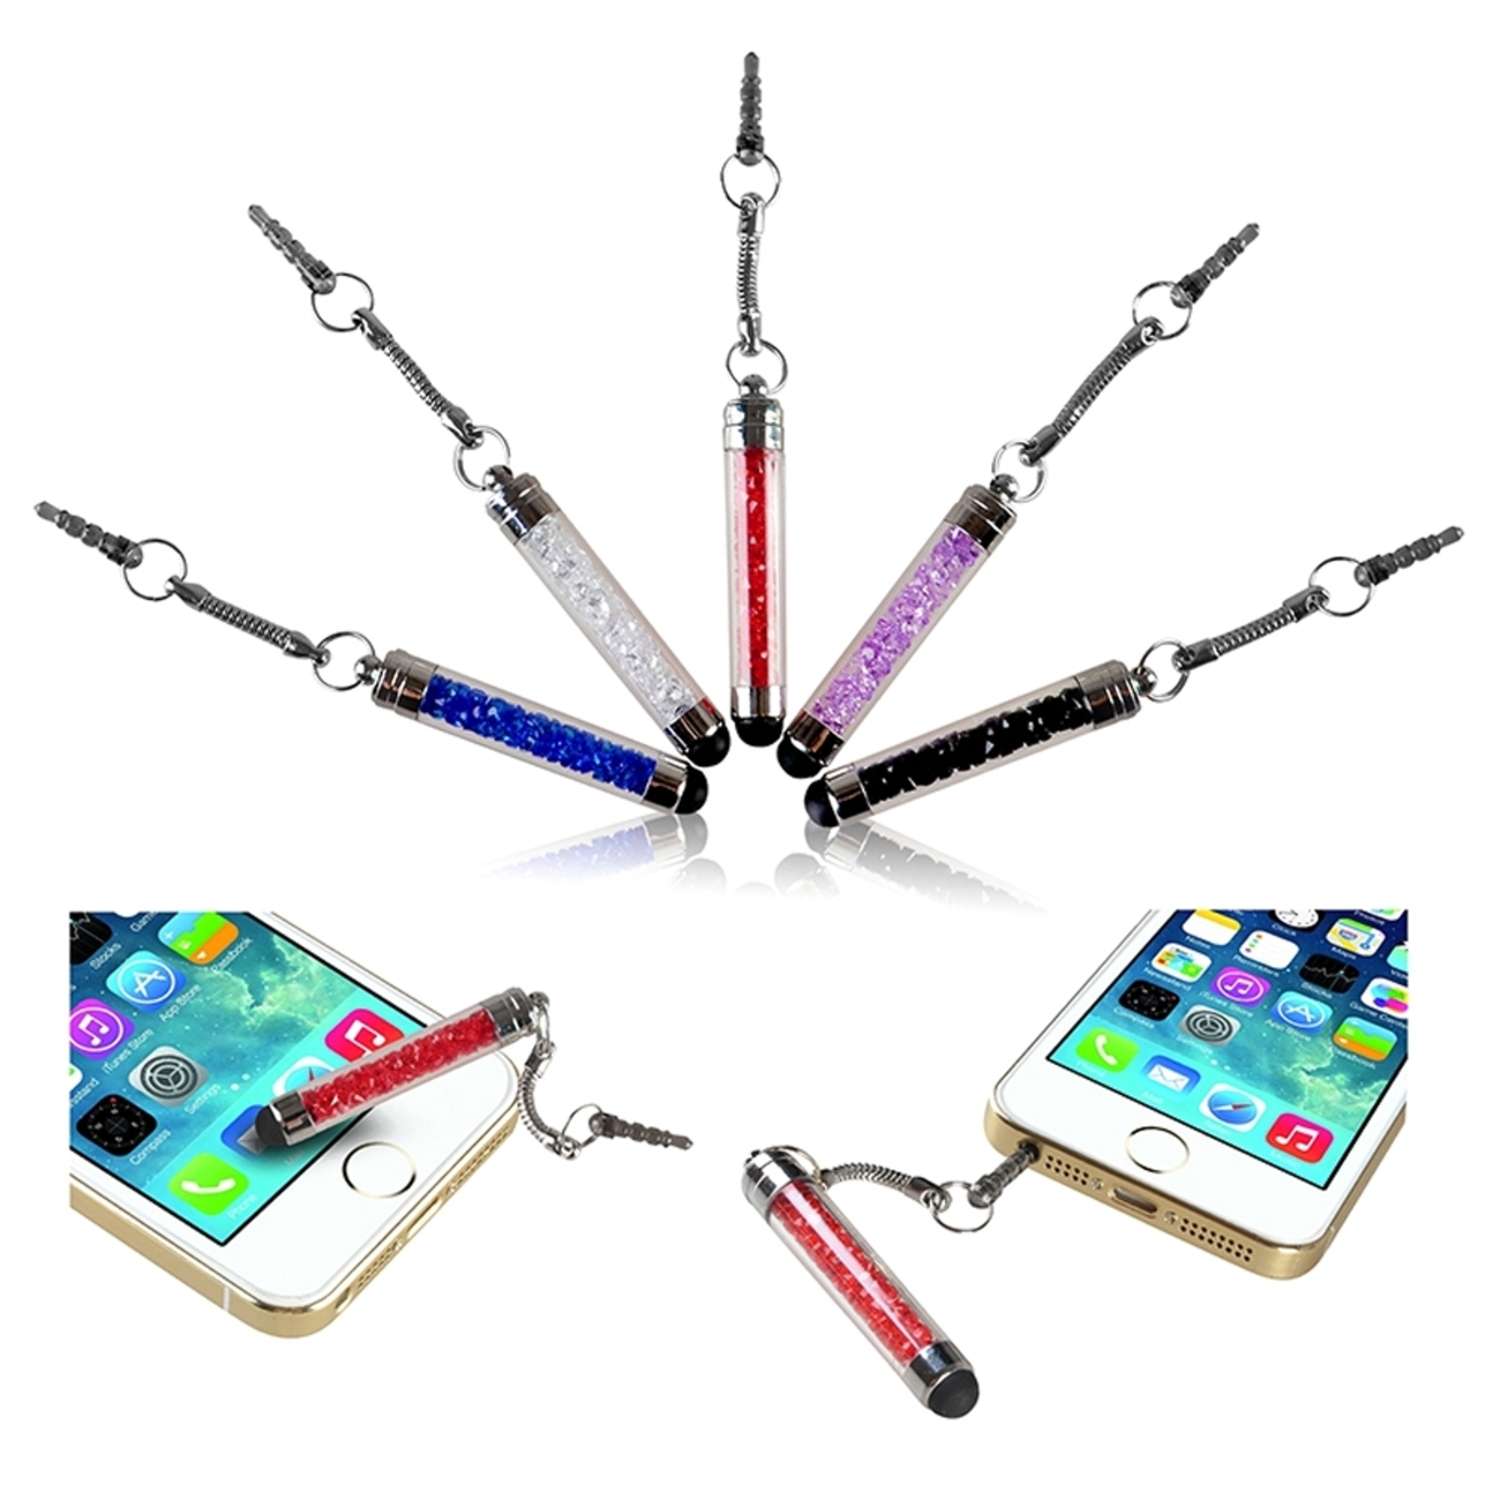 Insten 5-color Pack Universal Bing Crystal Mini Short Stylus Pen with 3.5mm Dust Plug Cap For iPhone 6 6S Plus SE 5S iPad Mini Air Pro / Samsung Galaxy S7 S6 Edge S5 Note 5 Grand Core Prime Tablet Tab